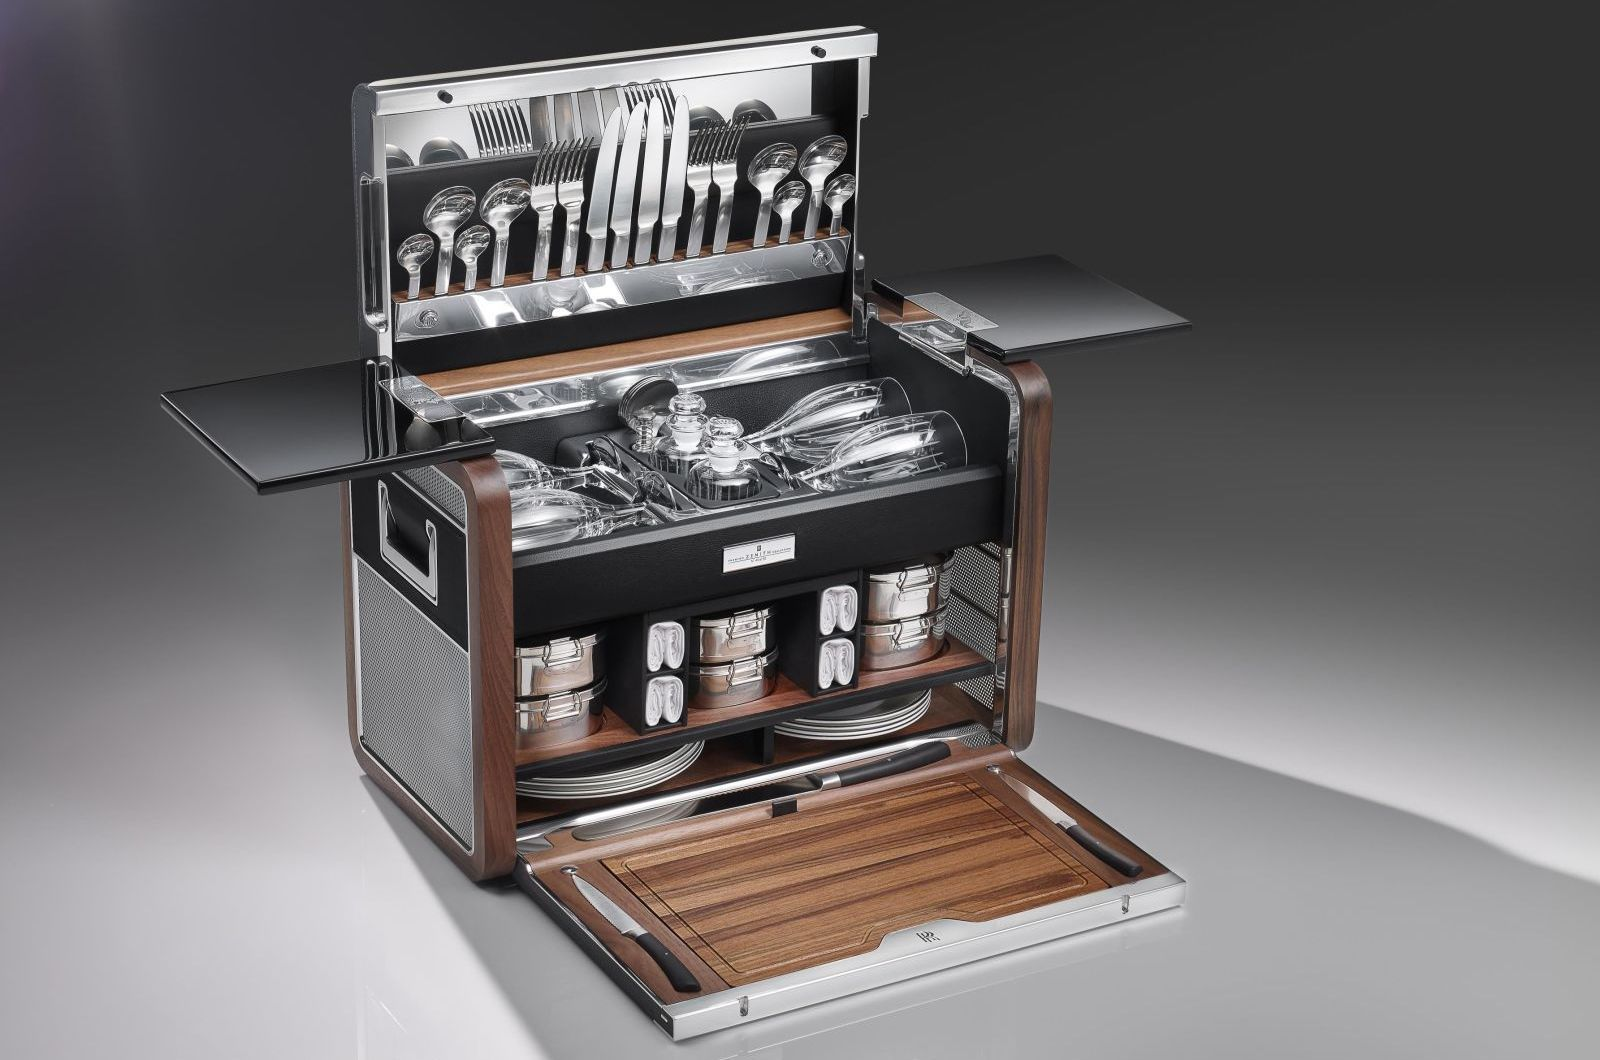 Rolls Royce Creates A Ridiculously Luxurious Picnic Basket